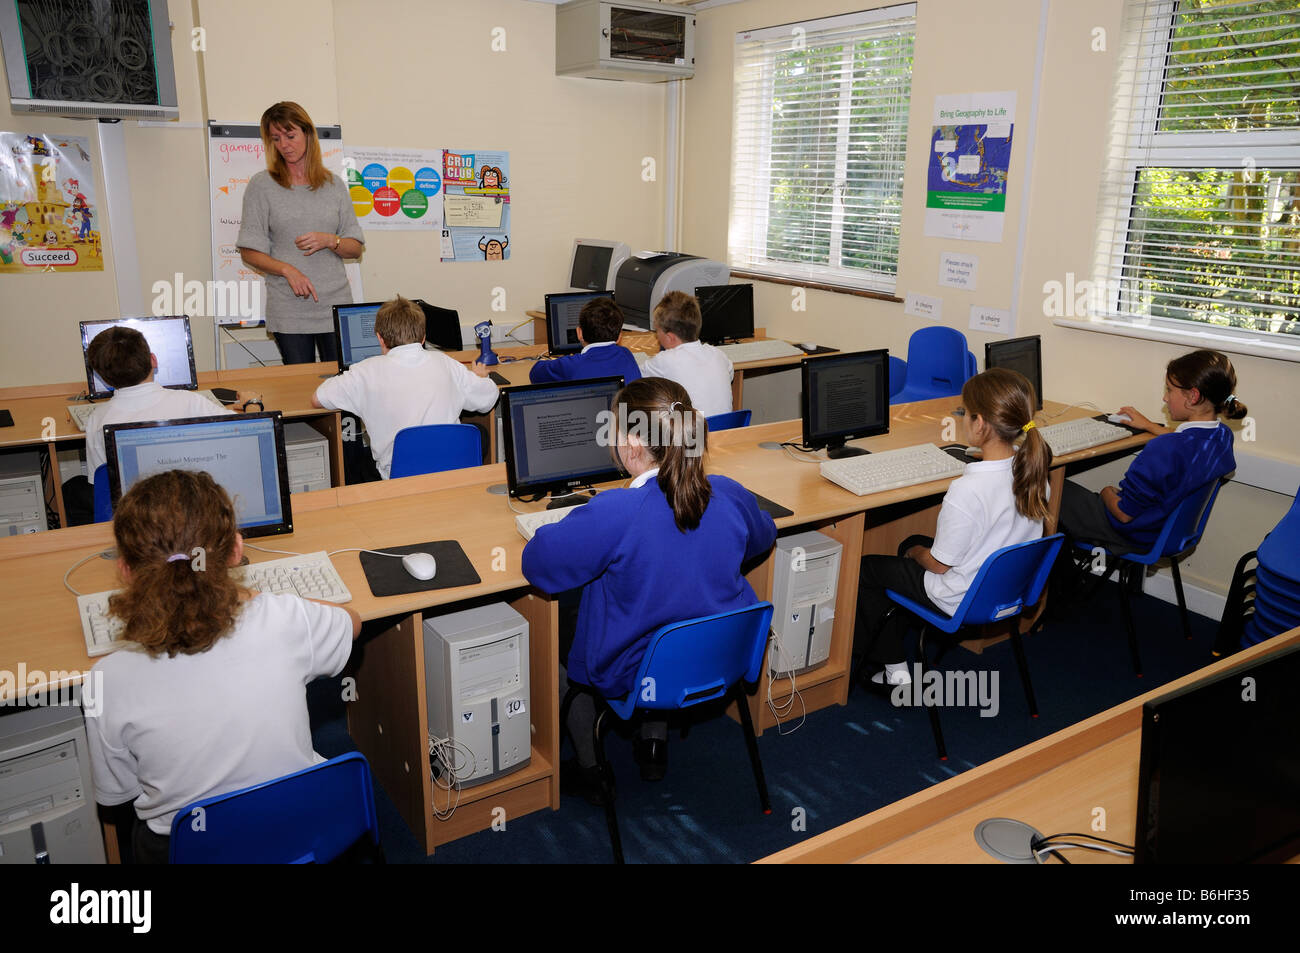 primary school pupils using computers in classroom